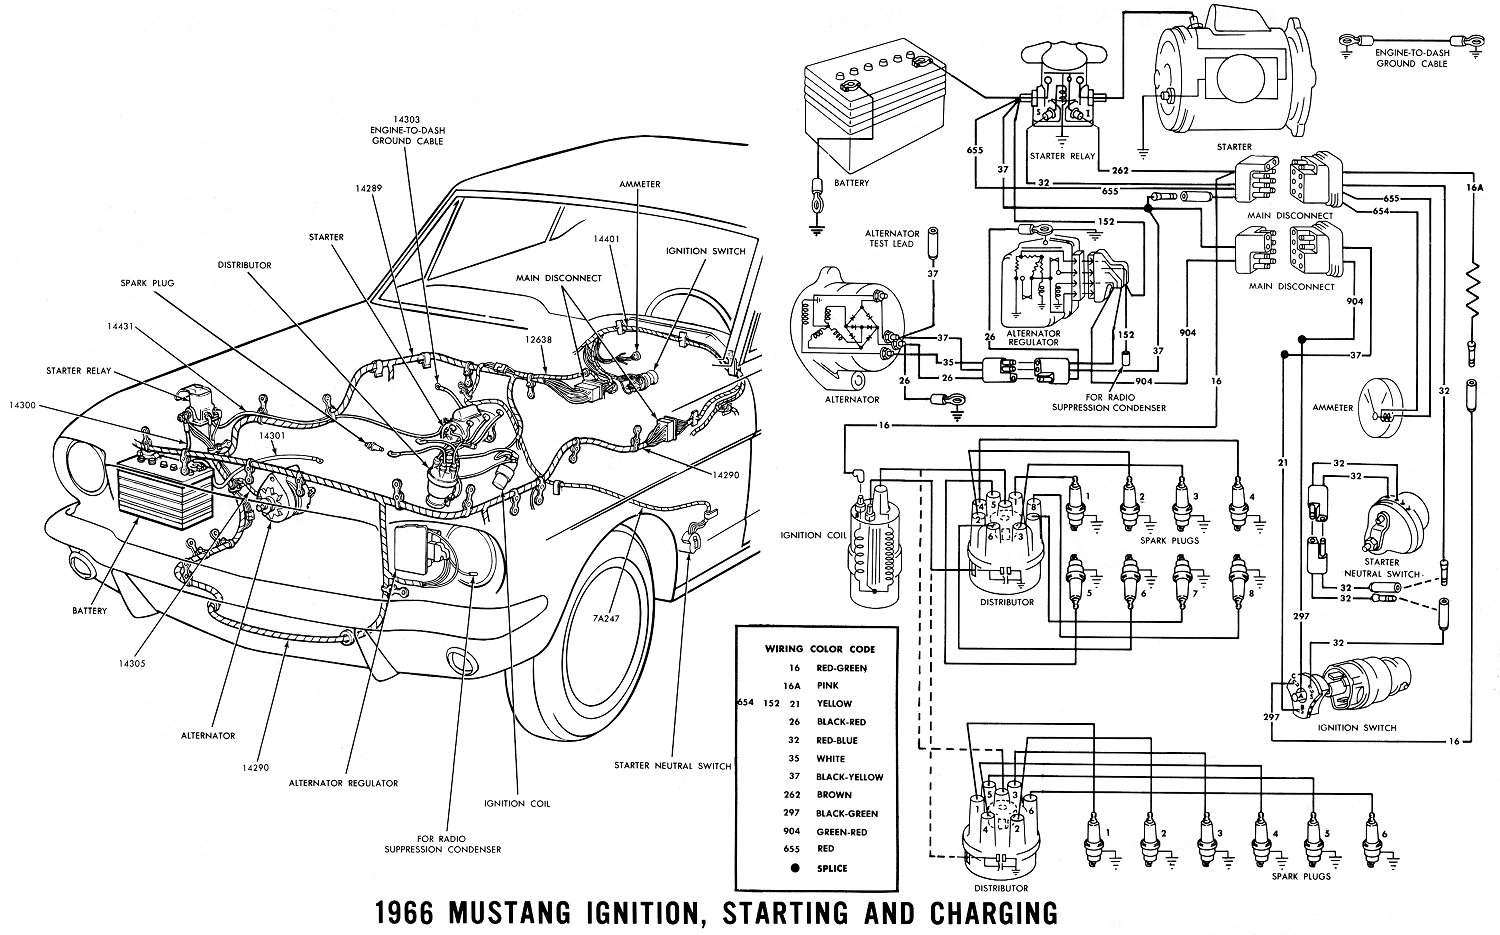 66ignit 1966 mustang wiring diagrams average joe restoration 1965 ford mustang wiring diagrams at crackthecode.co